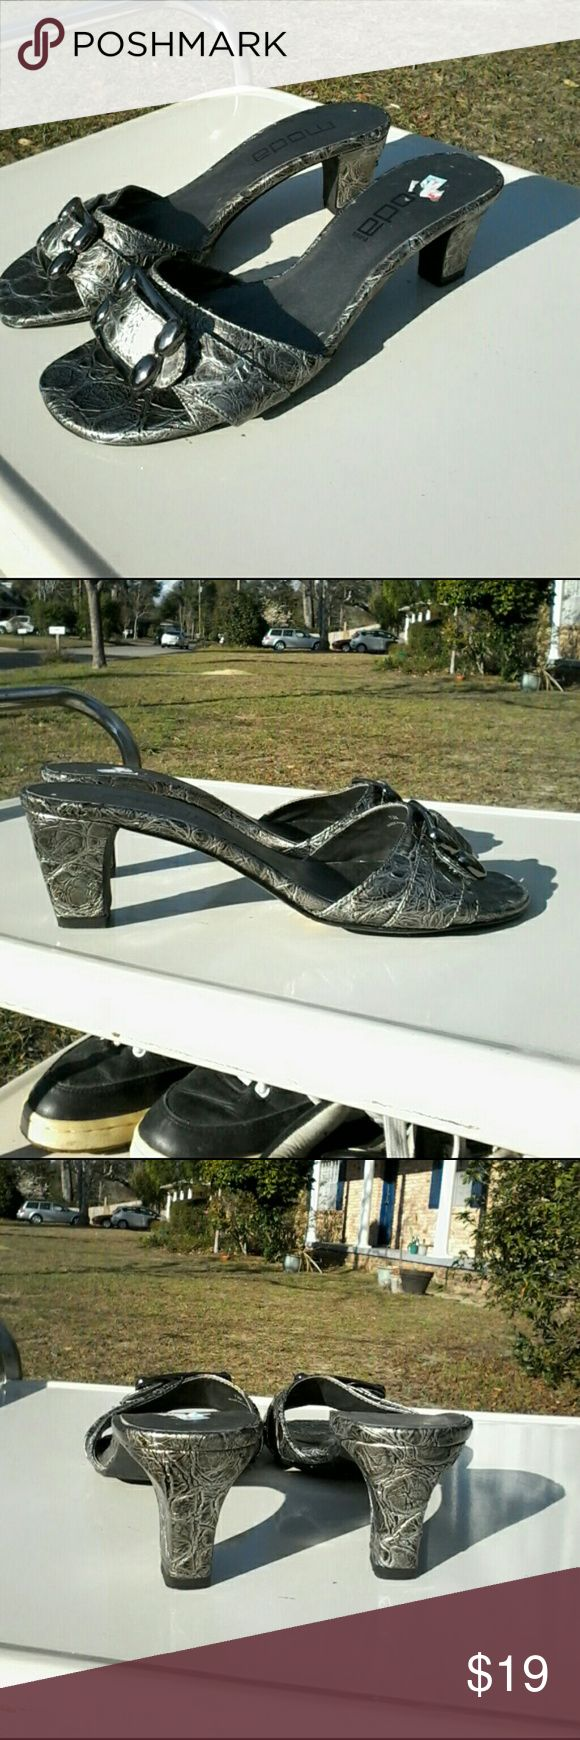 New - Moda slide sandals - 2 inch heel, Size 7.5M This is a new pair of Moda slide sandals with two inch heels in size 7.5M.  All man-made material with platinum faux croc design. Moda Shoes Sandals